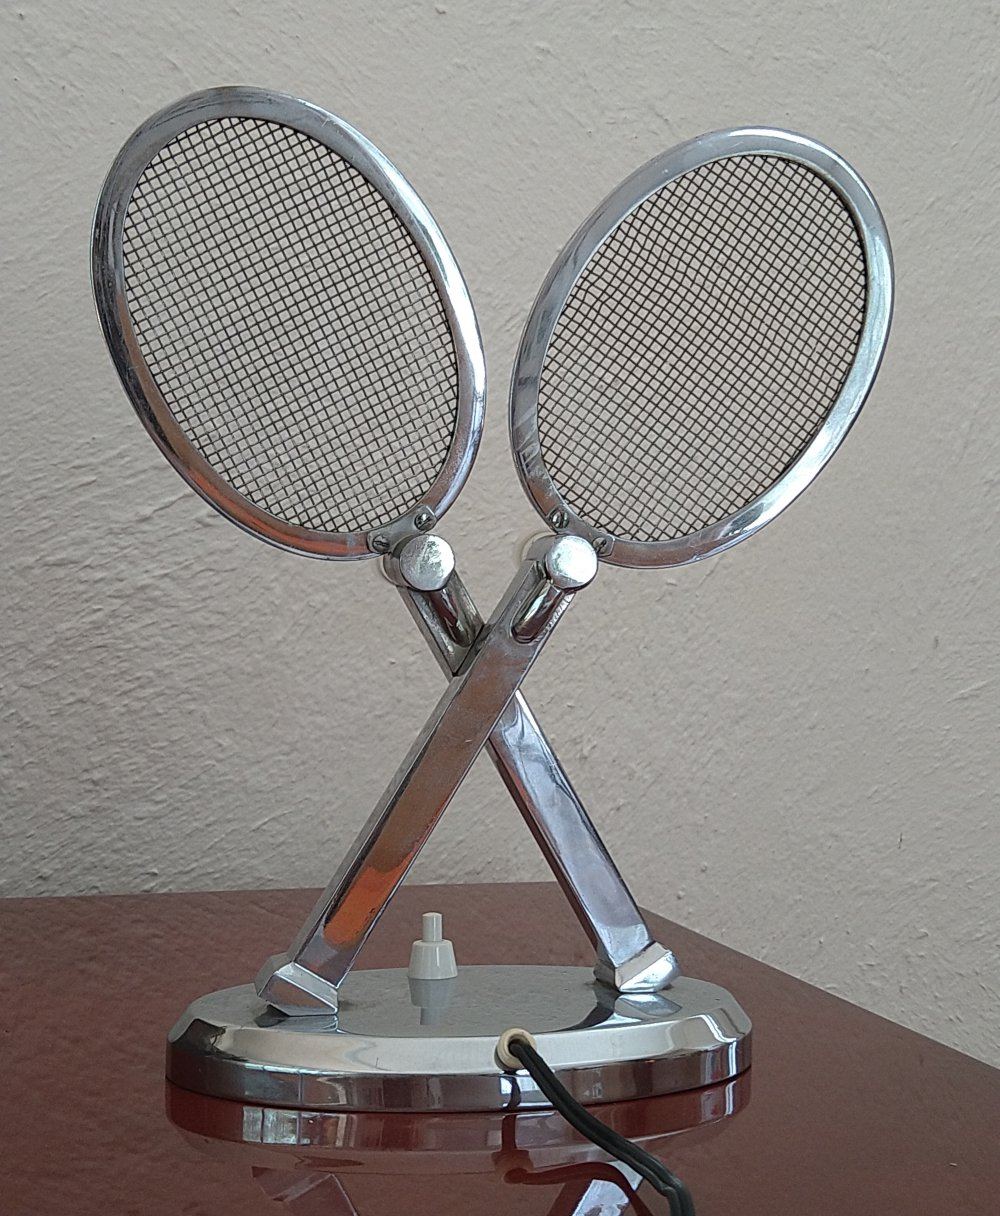 Desk lamp forming a pair of tennis racket, 1940s